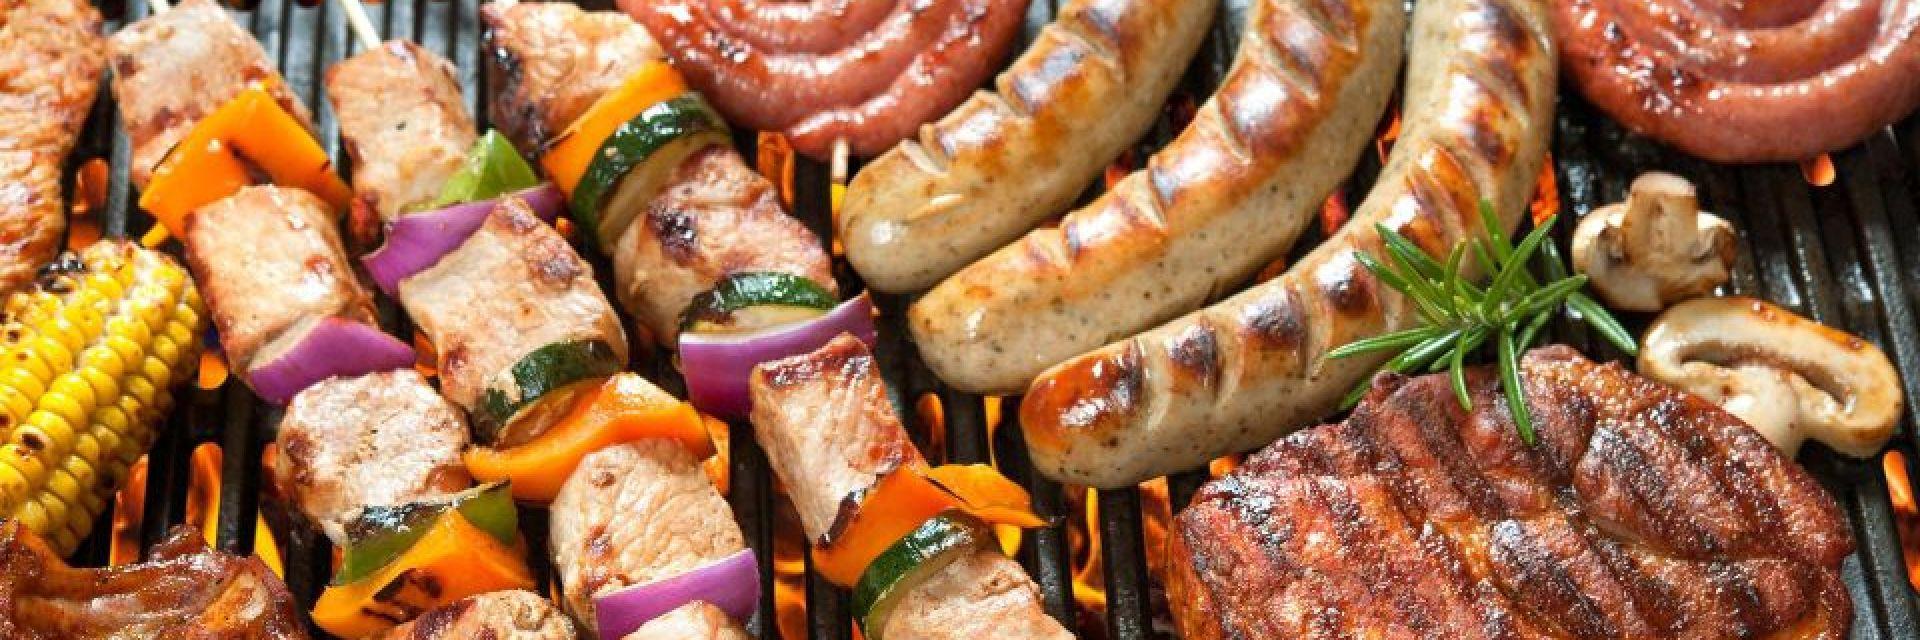 Our butchers have displayed fine selection of our BBQ meats ready for home delivery or delivery to campsites from our butchery in the New Forest